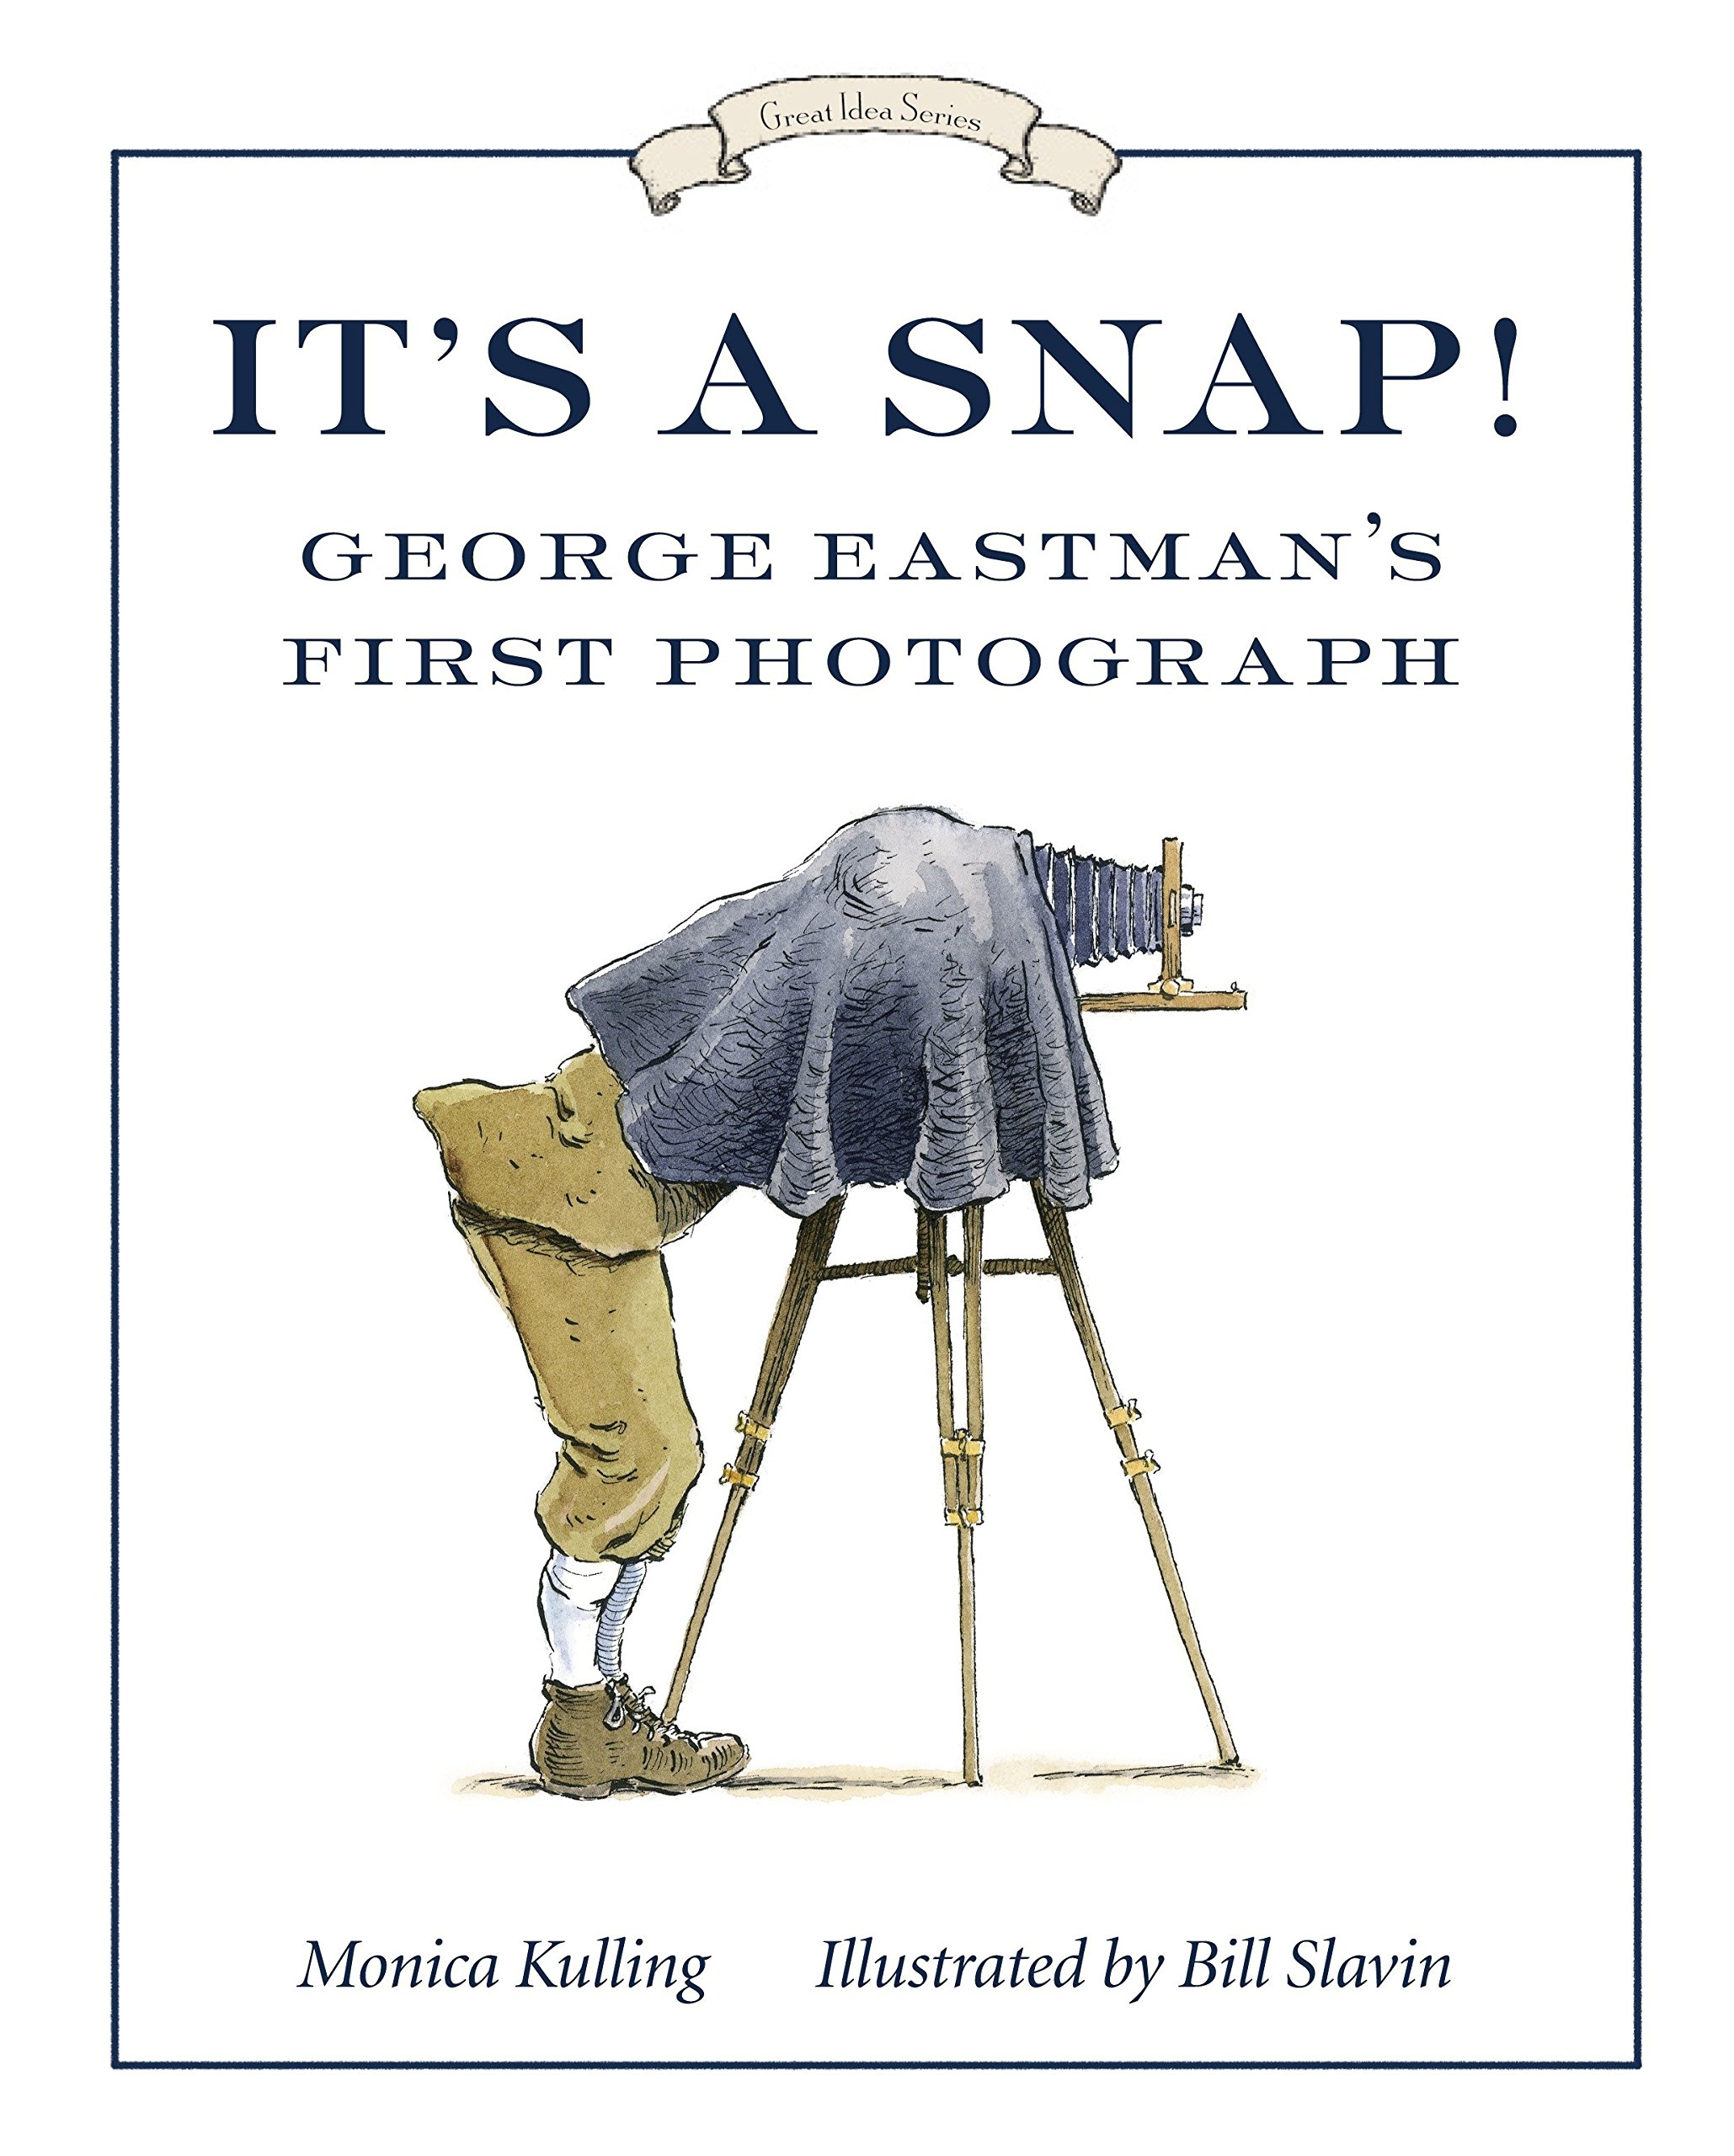 It's a Snap!: George Eastman's First Photo (Great Idea Series) by Kulling, Monica/ Slavin, Bill (ILT) (Image #1)